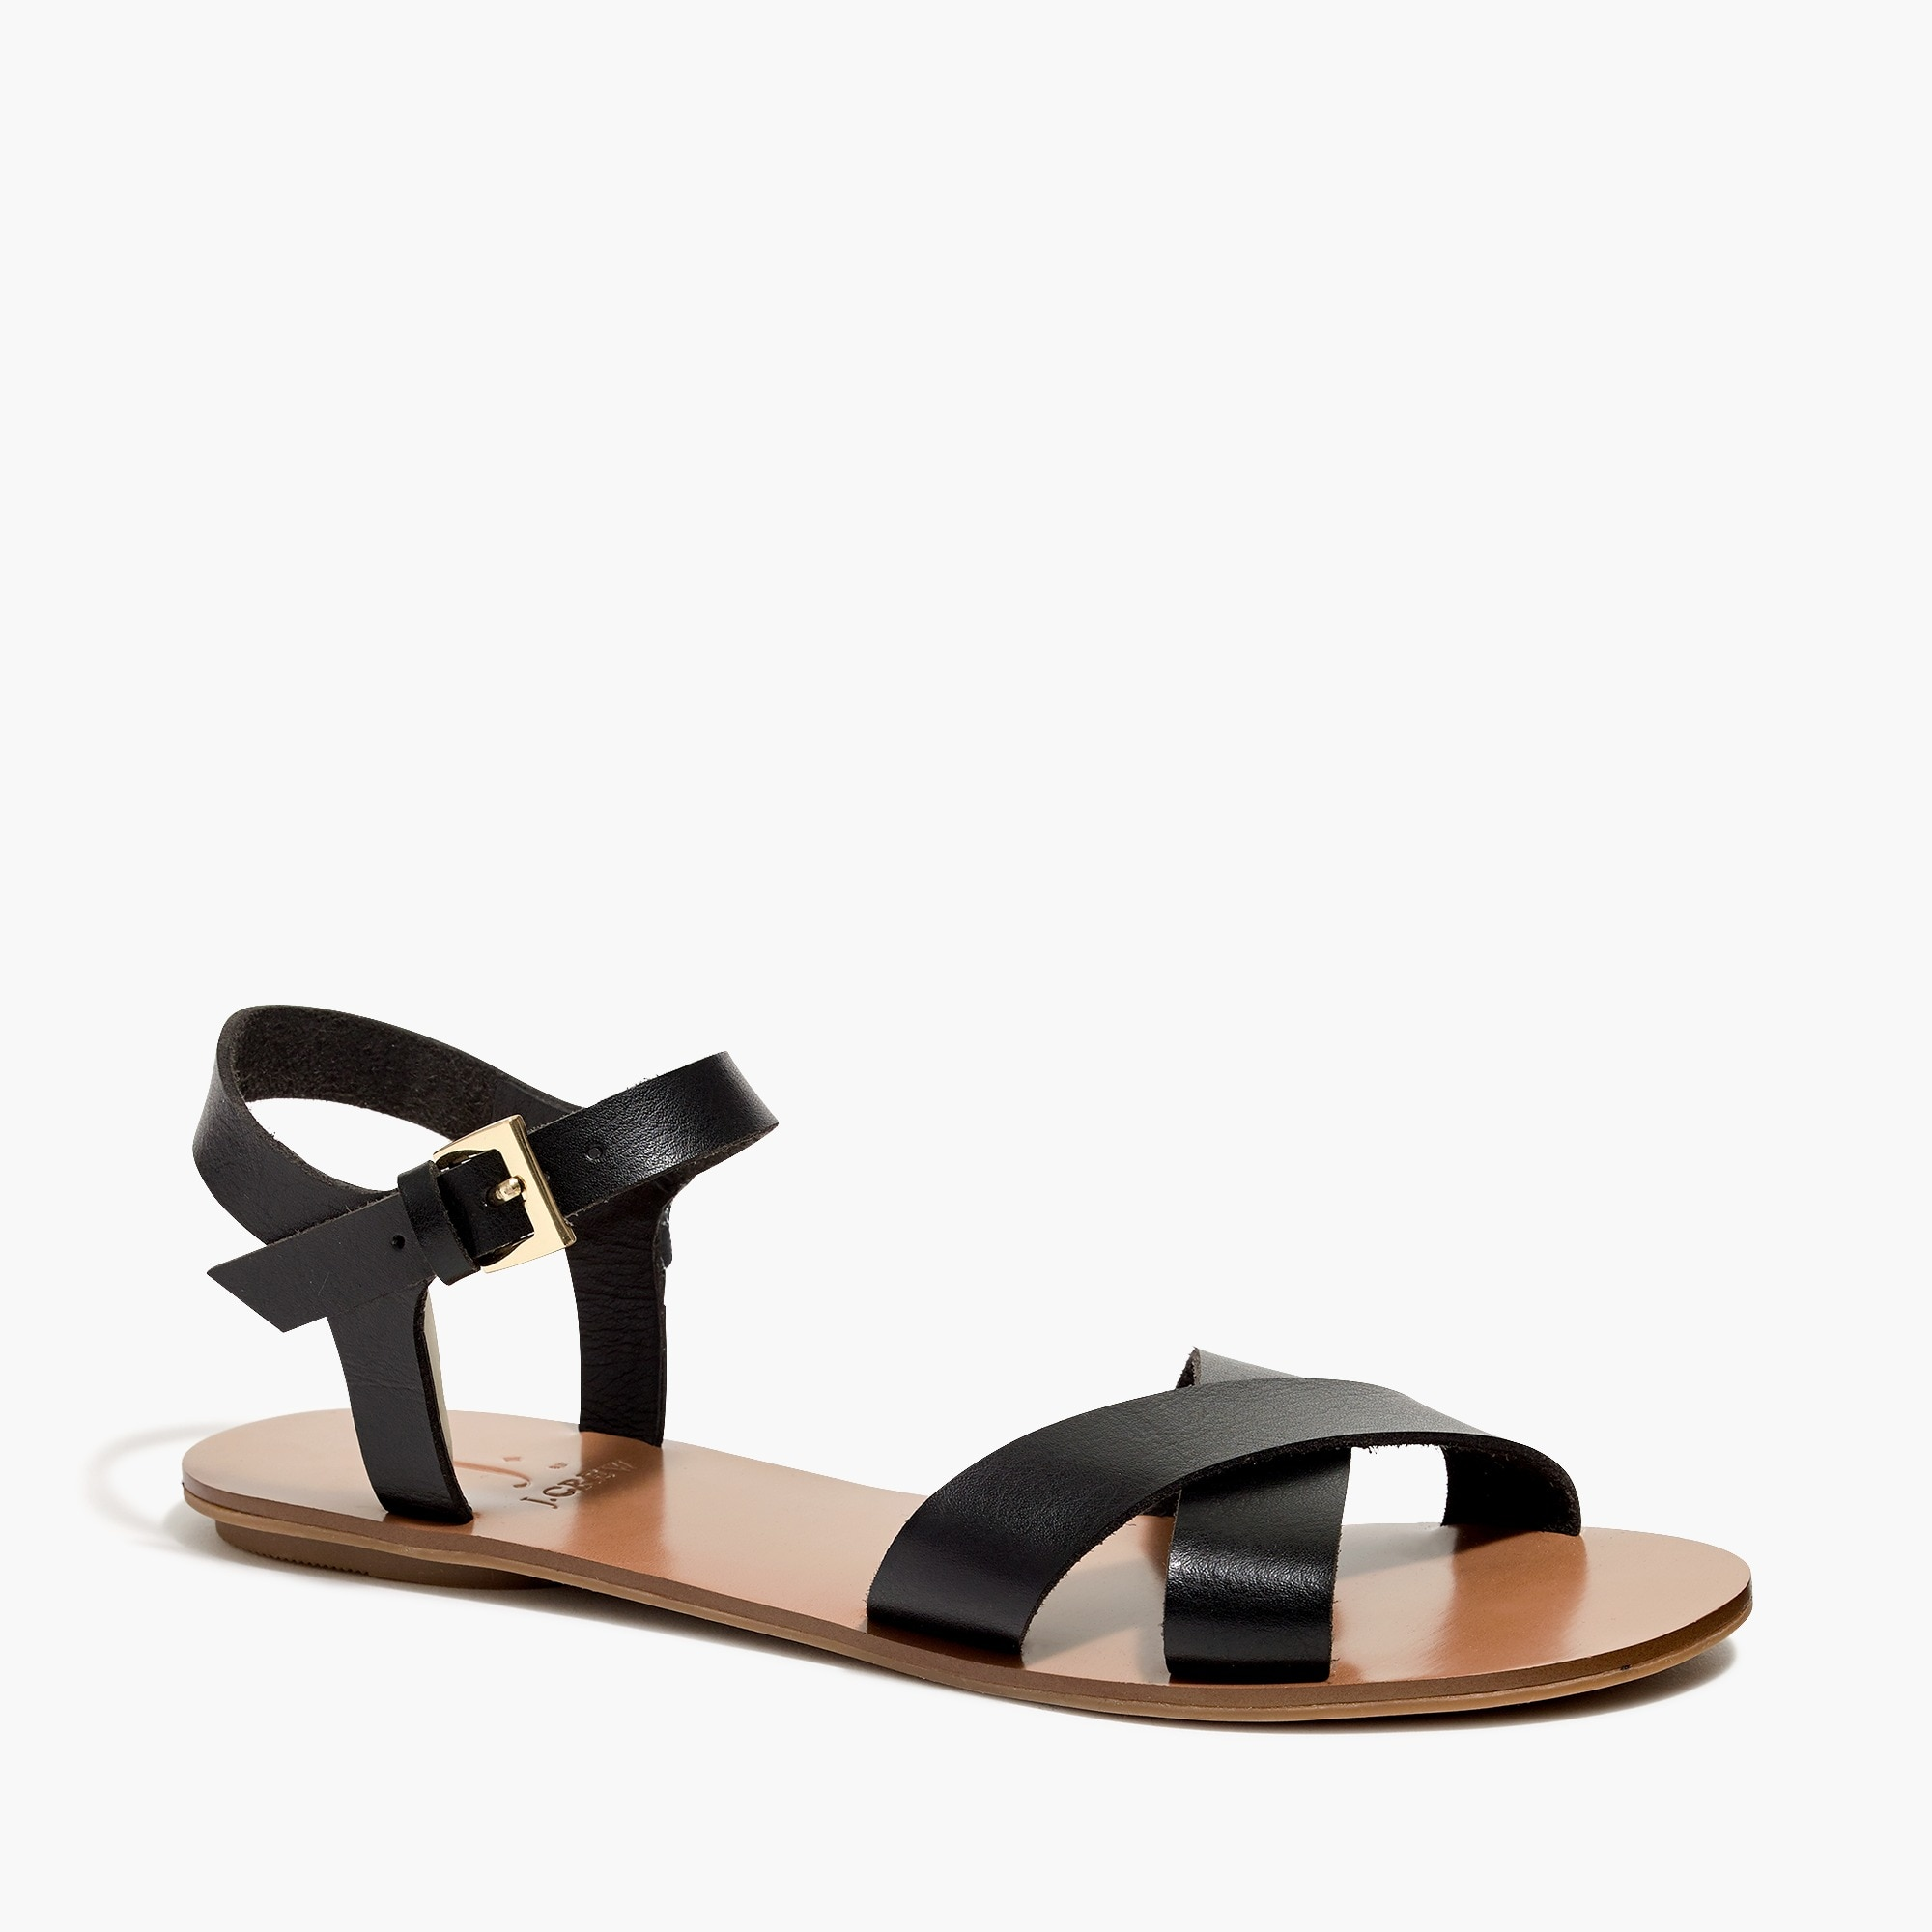 factory womens Crisscross sandals